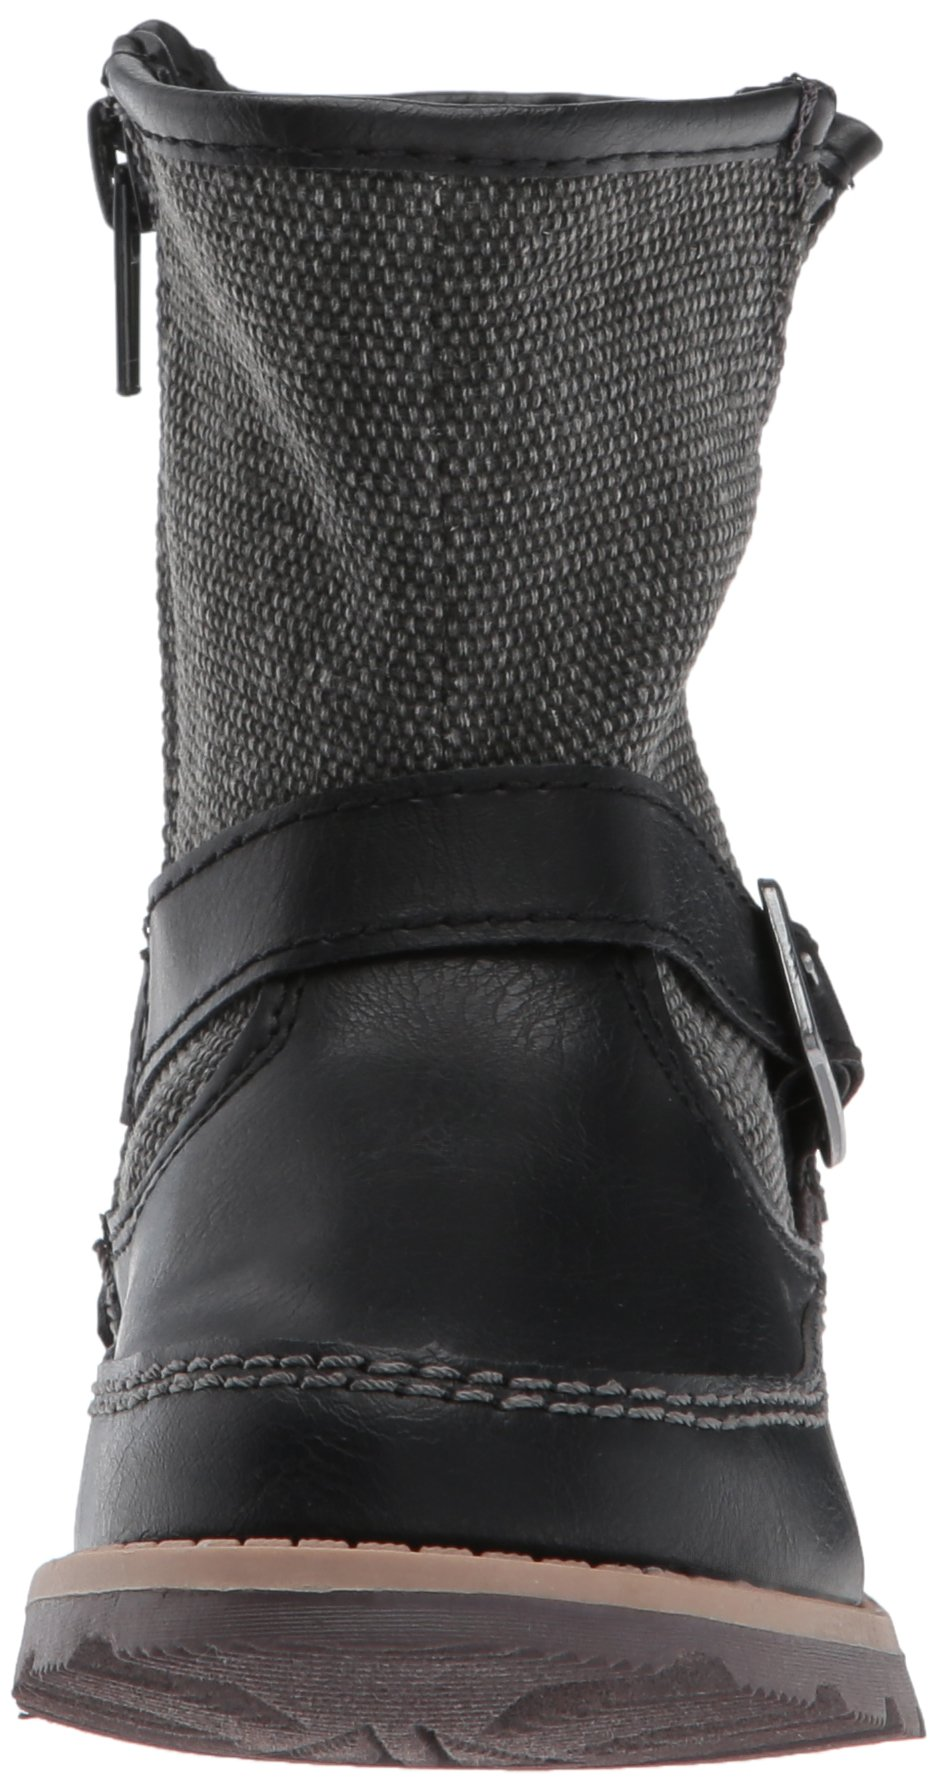 Carter's Boys' Galaway Fashion Boot, Black/Grey, 11 M US Little Kid by Carter's (Image #4)